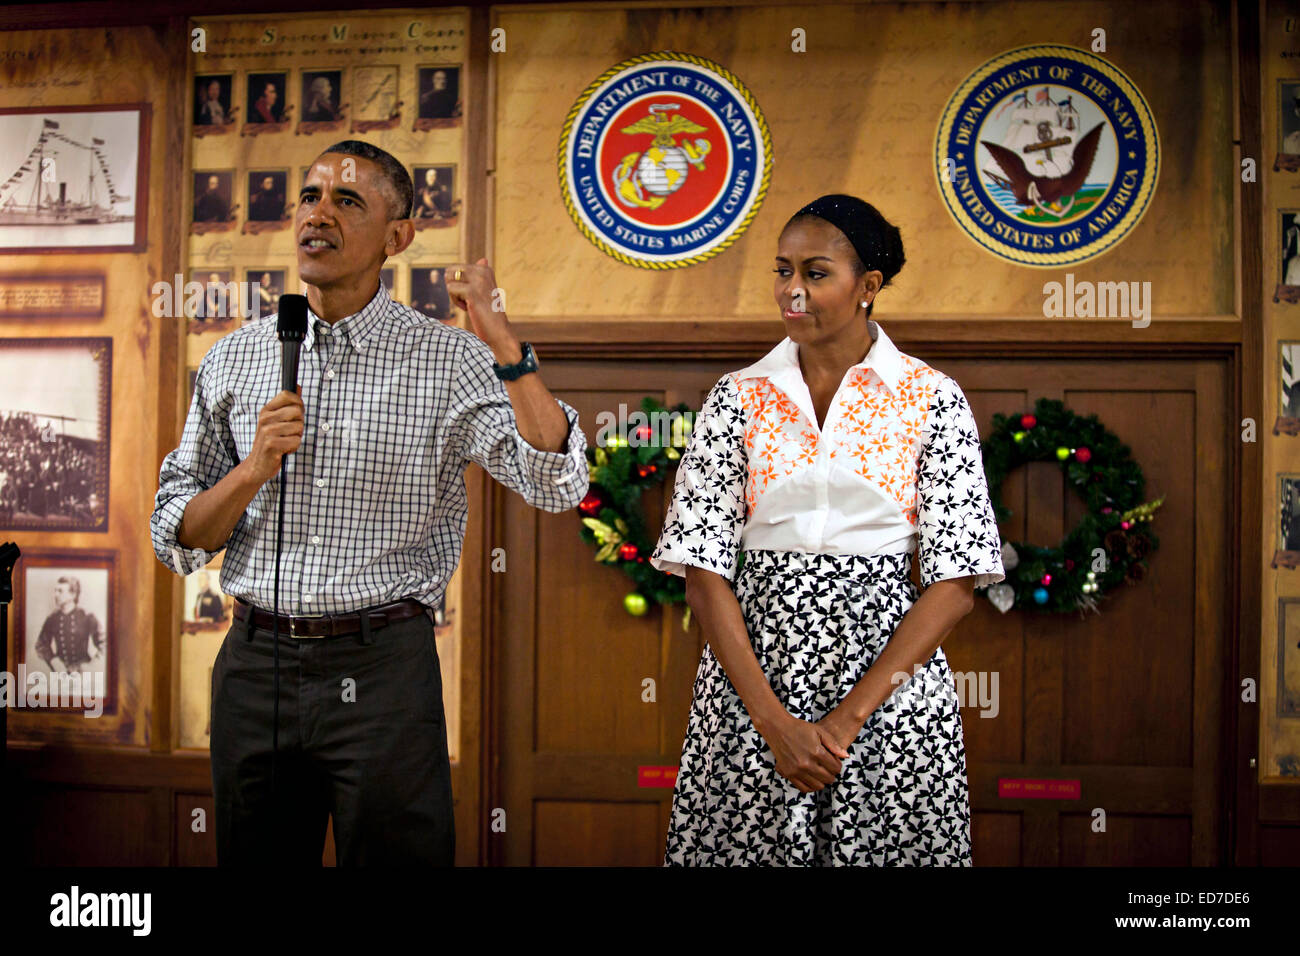 US President Barack Obama and First Lady Michelle Obama thanks the troops during a Christmas visit to meet Marines - Stock Image